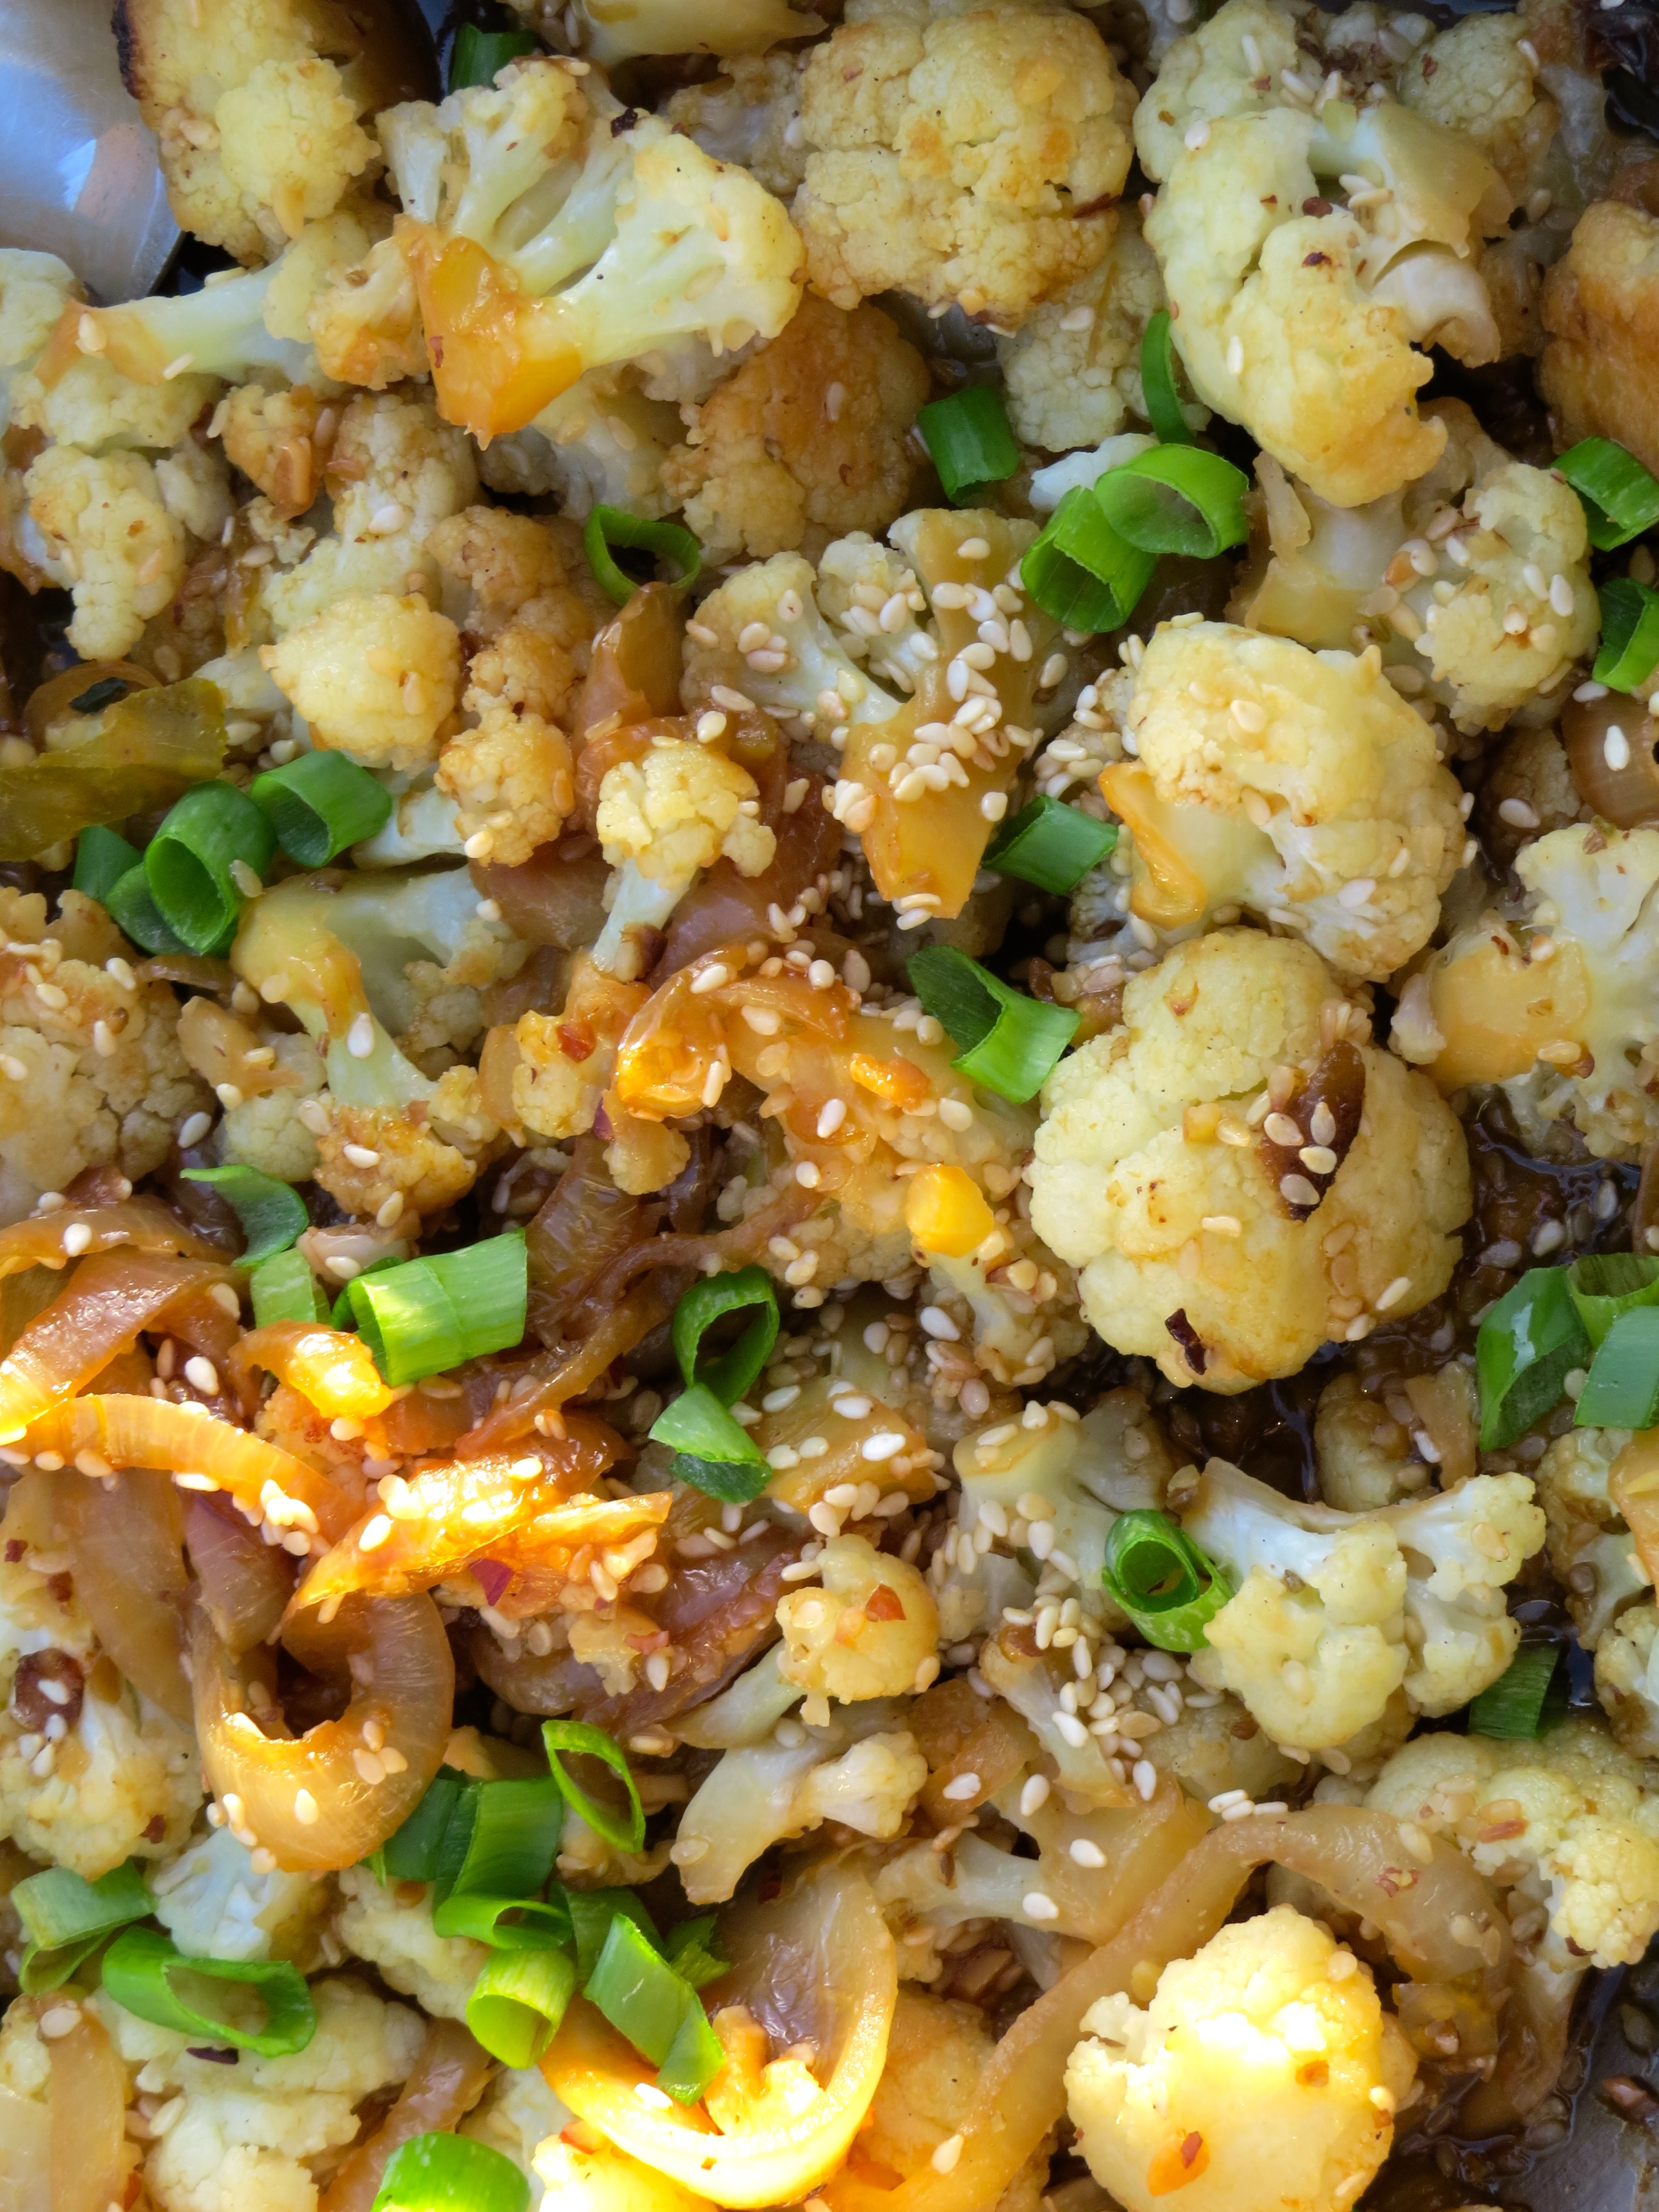 Stir-fried Sesame Cauliflower, a strongly seasoned side dish with chile, garlic and ginger.